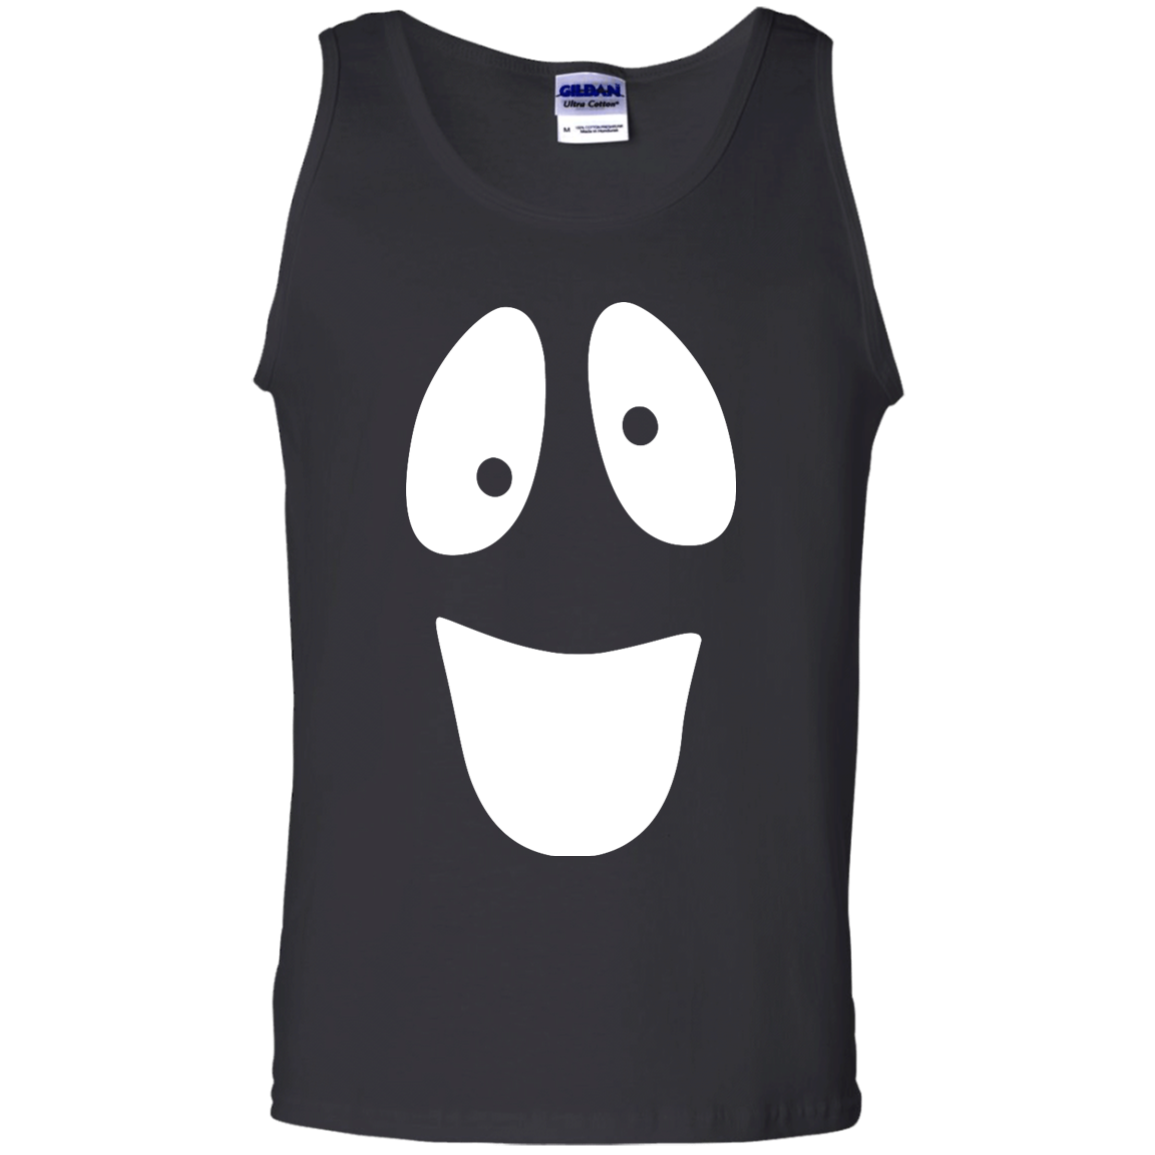 Funny Ghost Face shirt: Halloween t-shirt/tank/hoodie